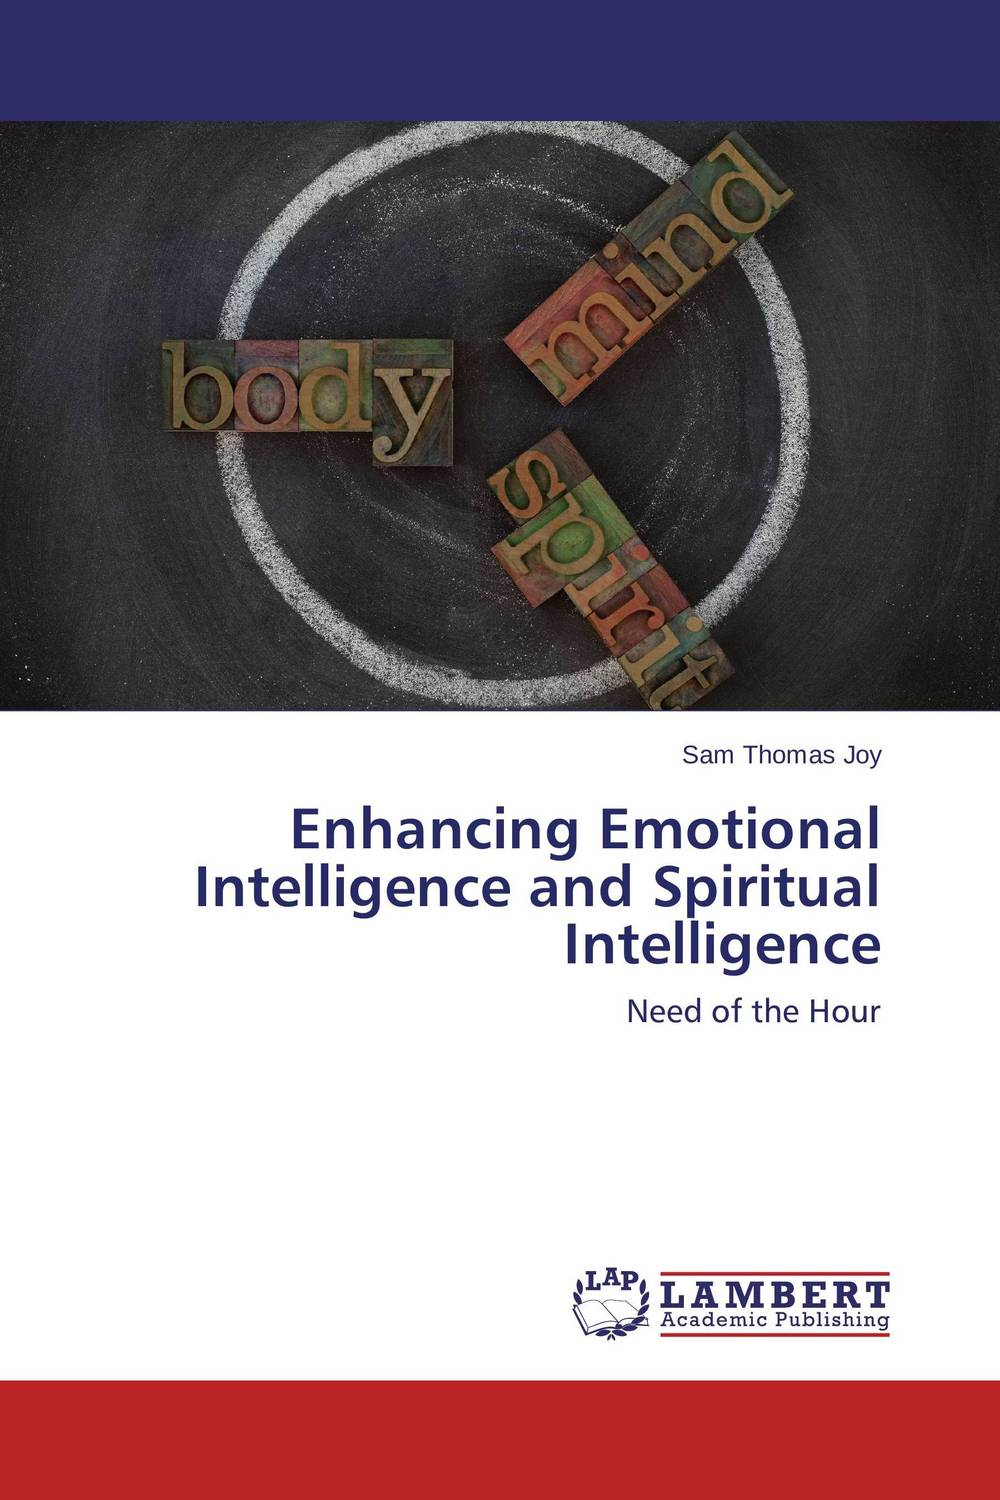 Enhancing Emotional Intelligence and Spiritual Intelligence diana giddon unequaled tips for building a successful career through emotional intelligence